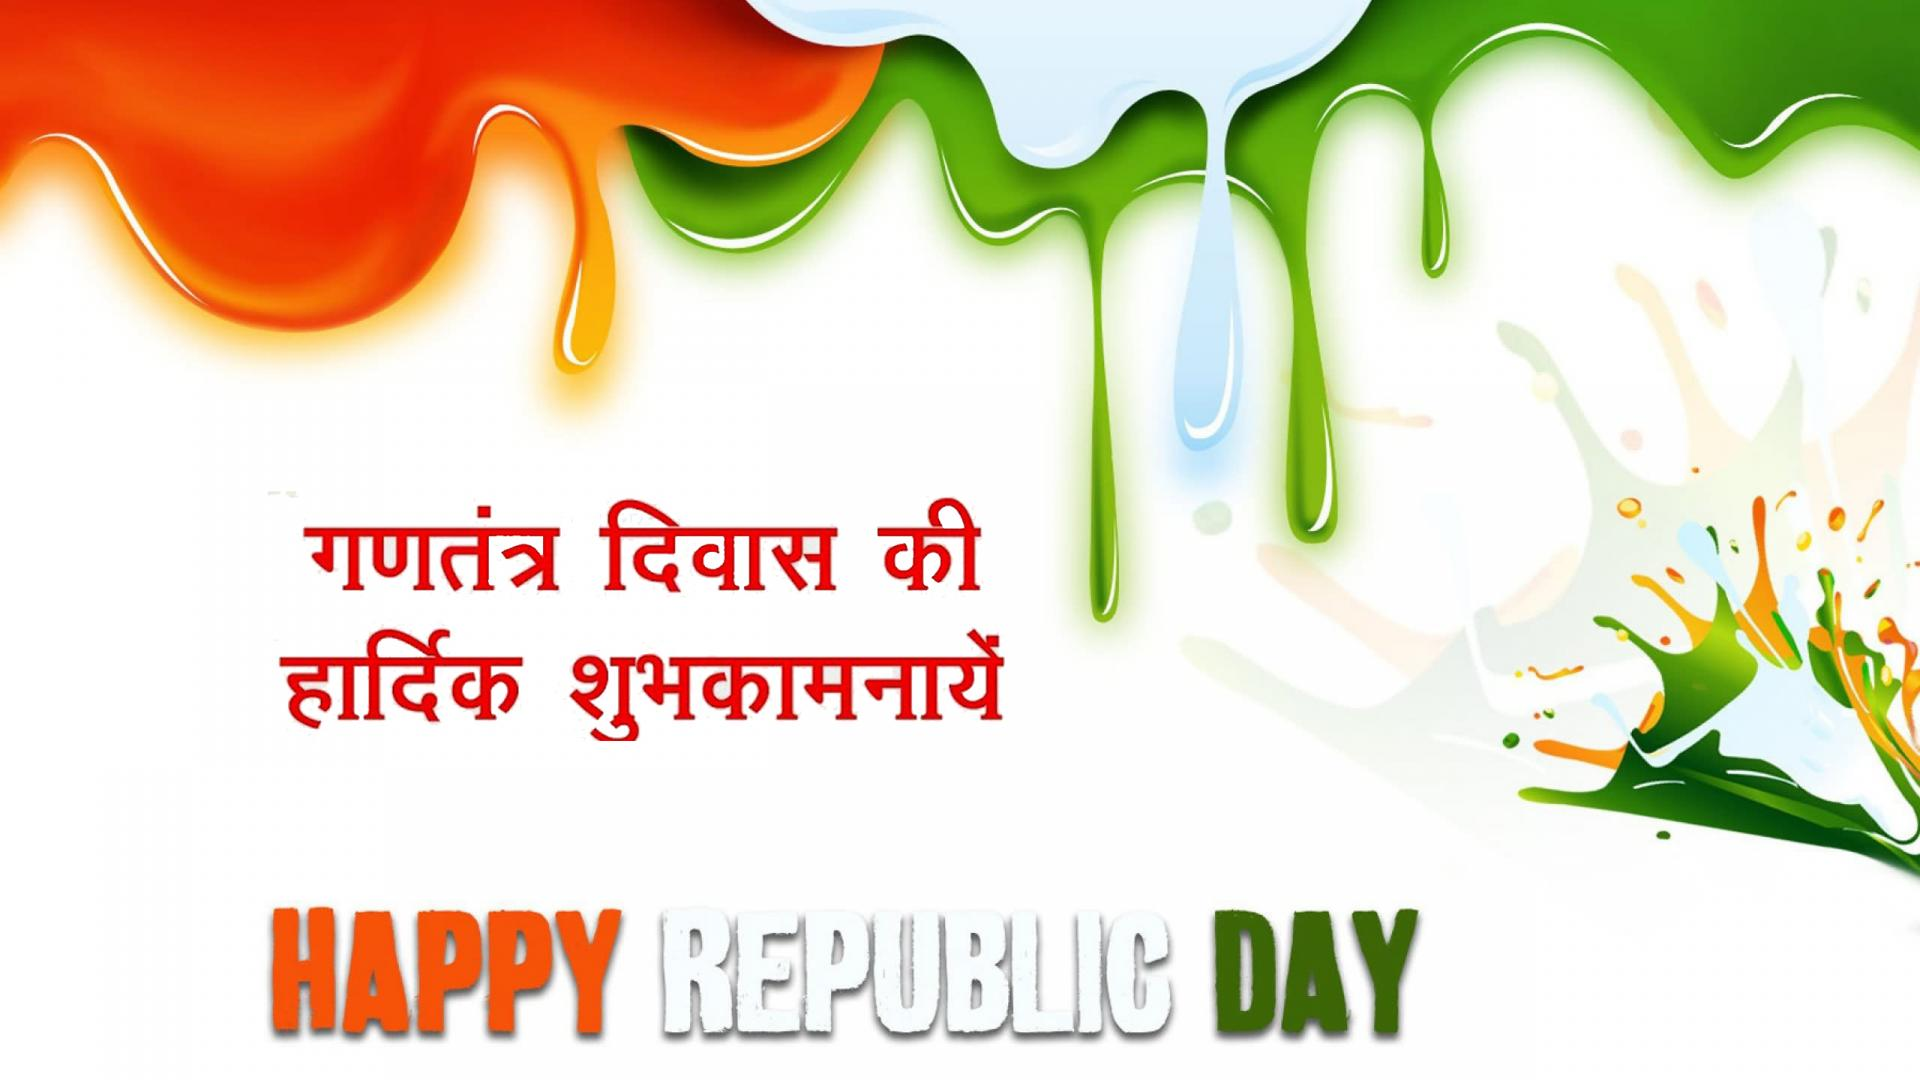 Republic Day Essay In Hindi For Wallpaper Hd Wallpapers